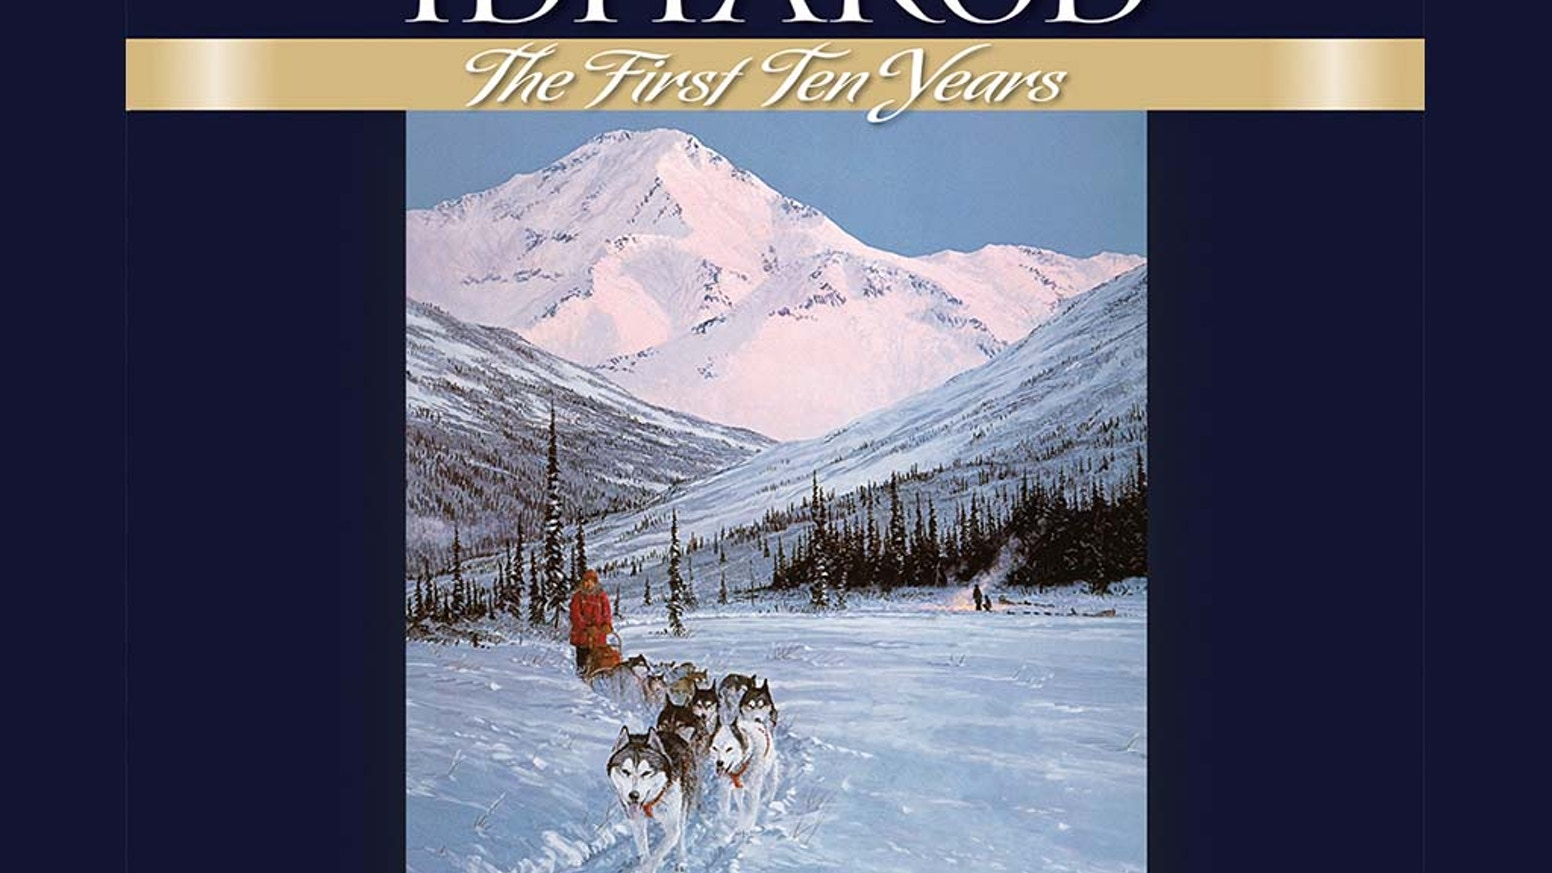 An anthology of stories, photos and art by those who helped shape the first decade of Alaska's Iditarod Trail Sled Dog Race.